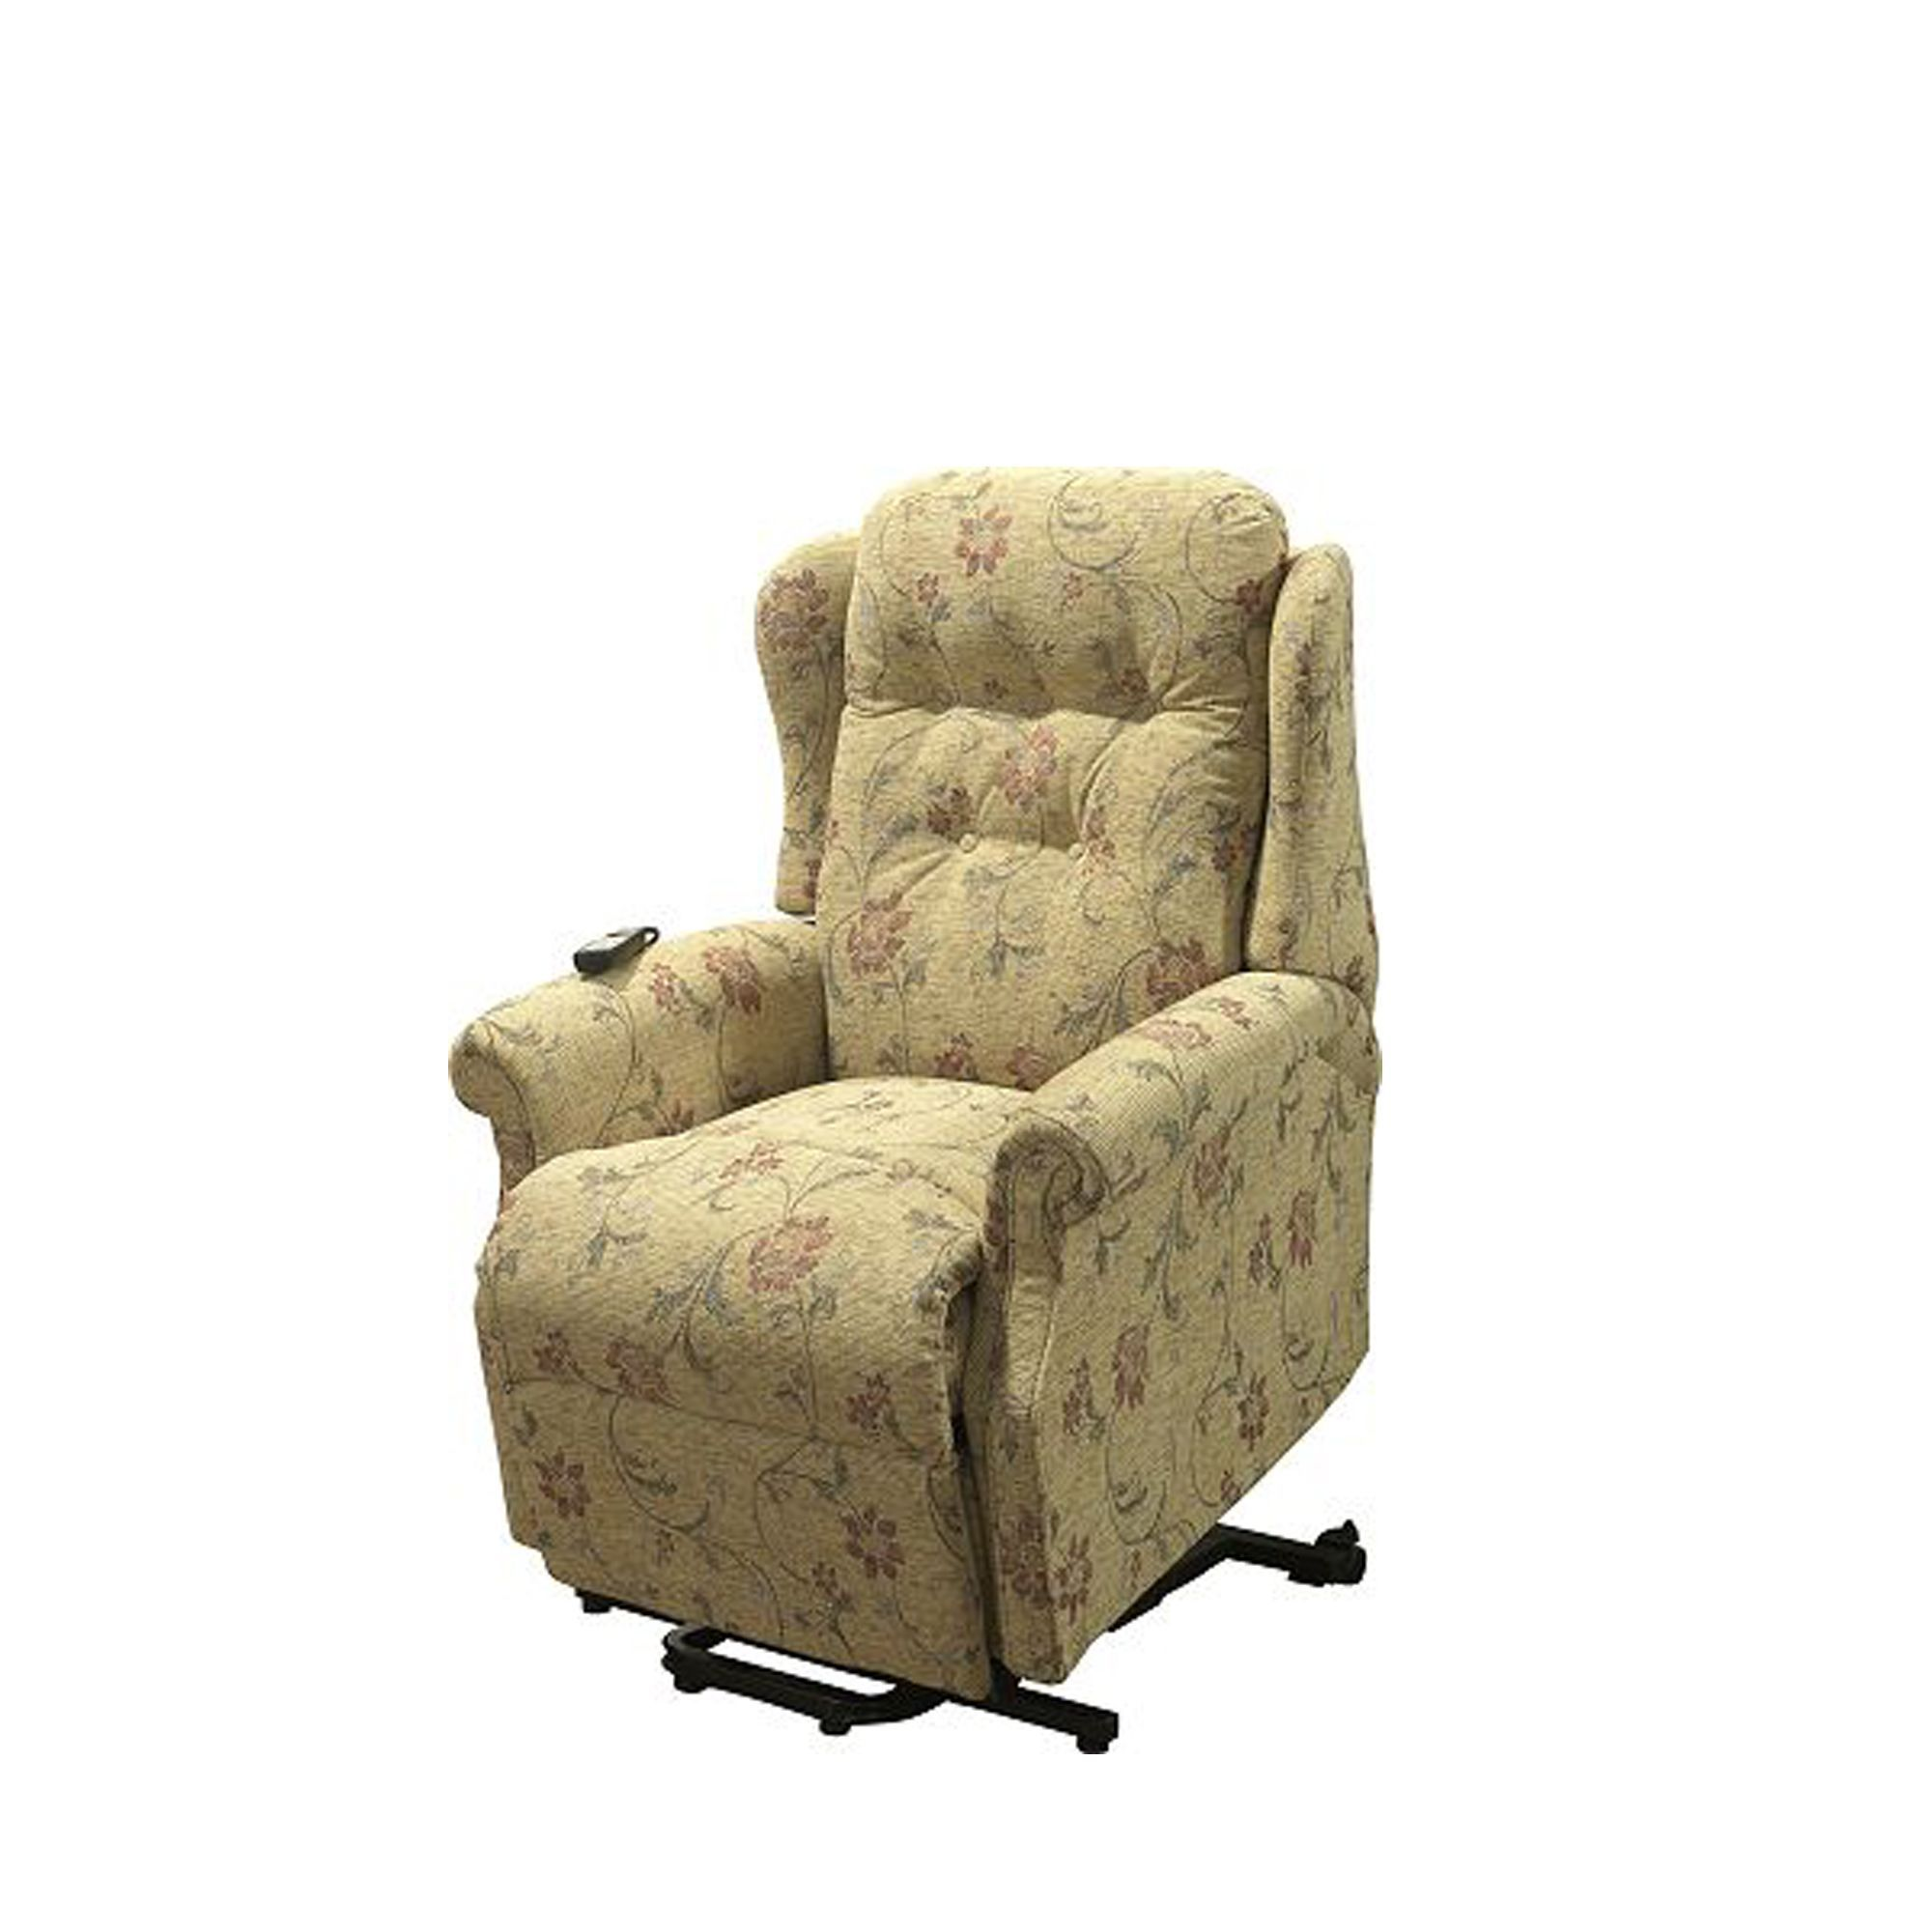 Vale Bridgecraft Symphony Dual Motor Lift And Rise Recliner Armchair  sc 1 st  Cookes Furniture & Vale Bridgecraft Symphony Dual Motor Lift And Rise Recliner ... islam-shia.org